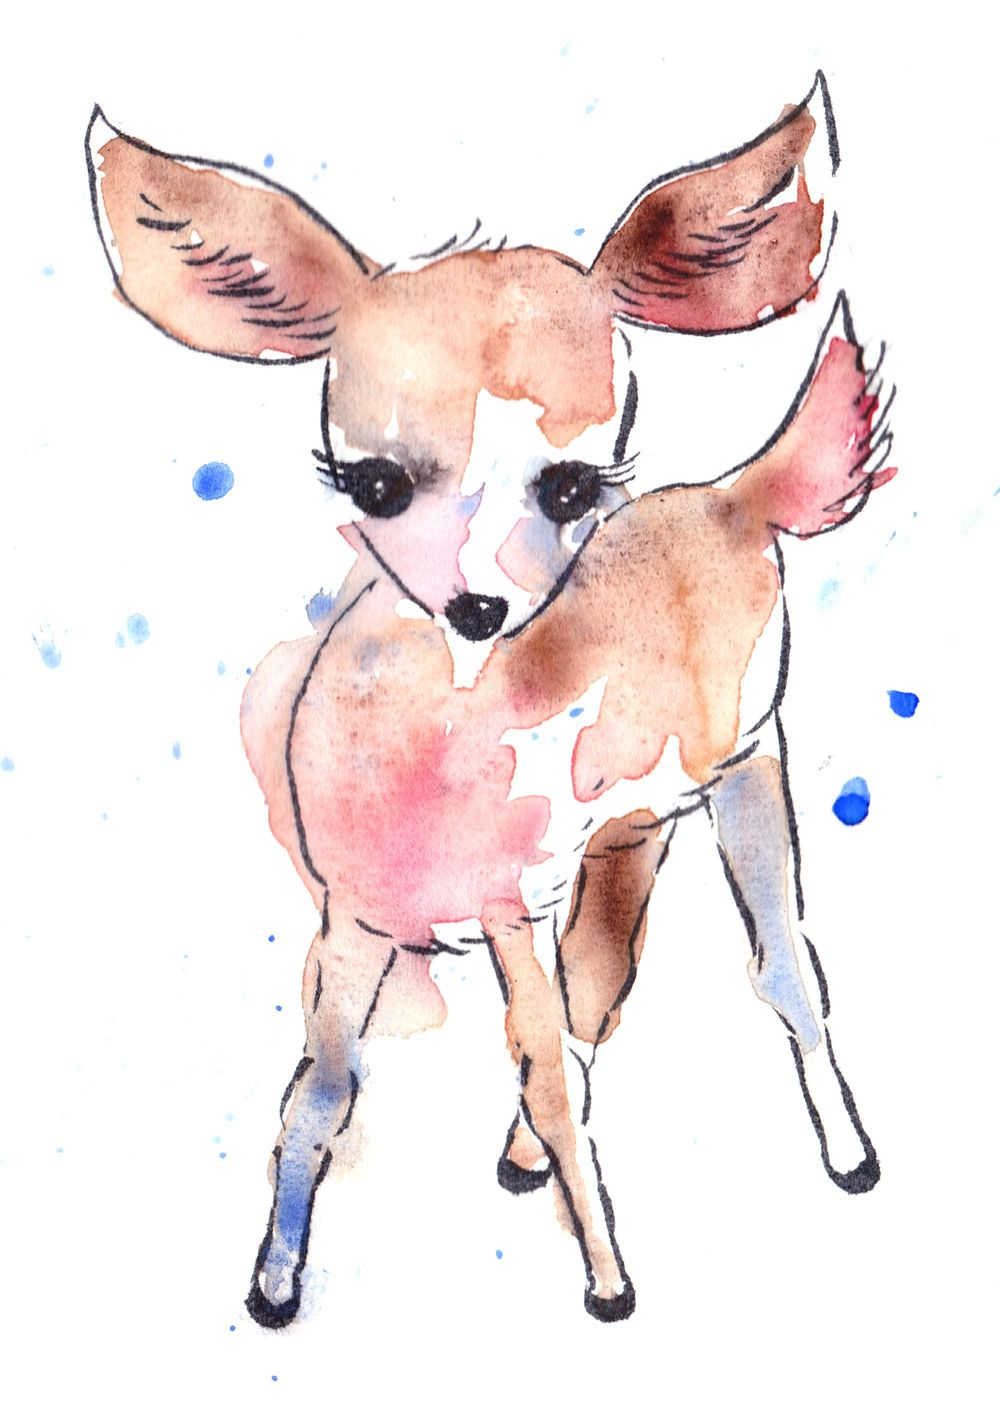 In love with a deer and very 'scary' bat ;) - image 1 - student project